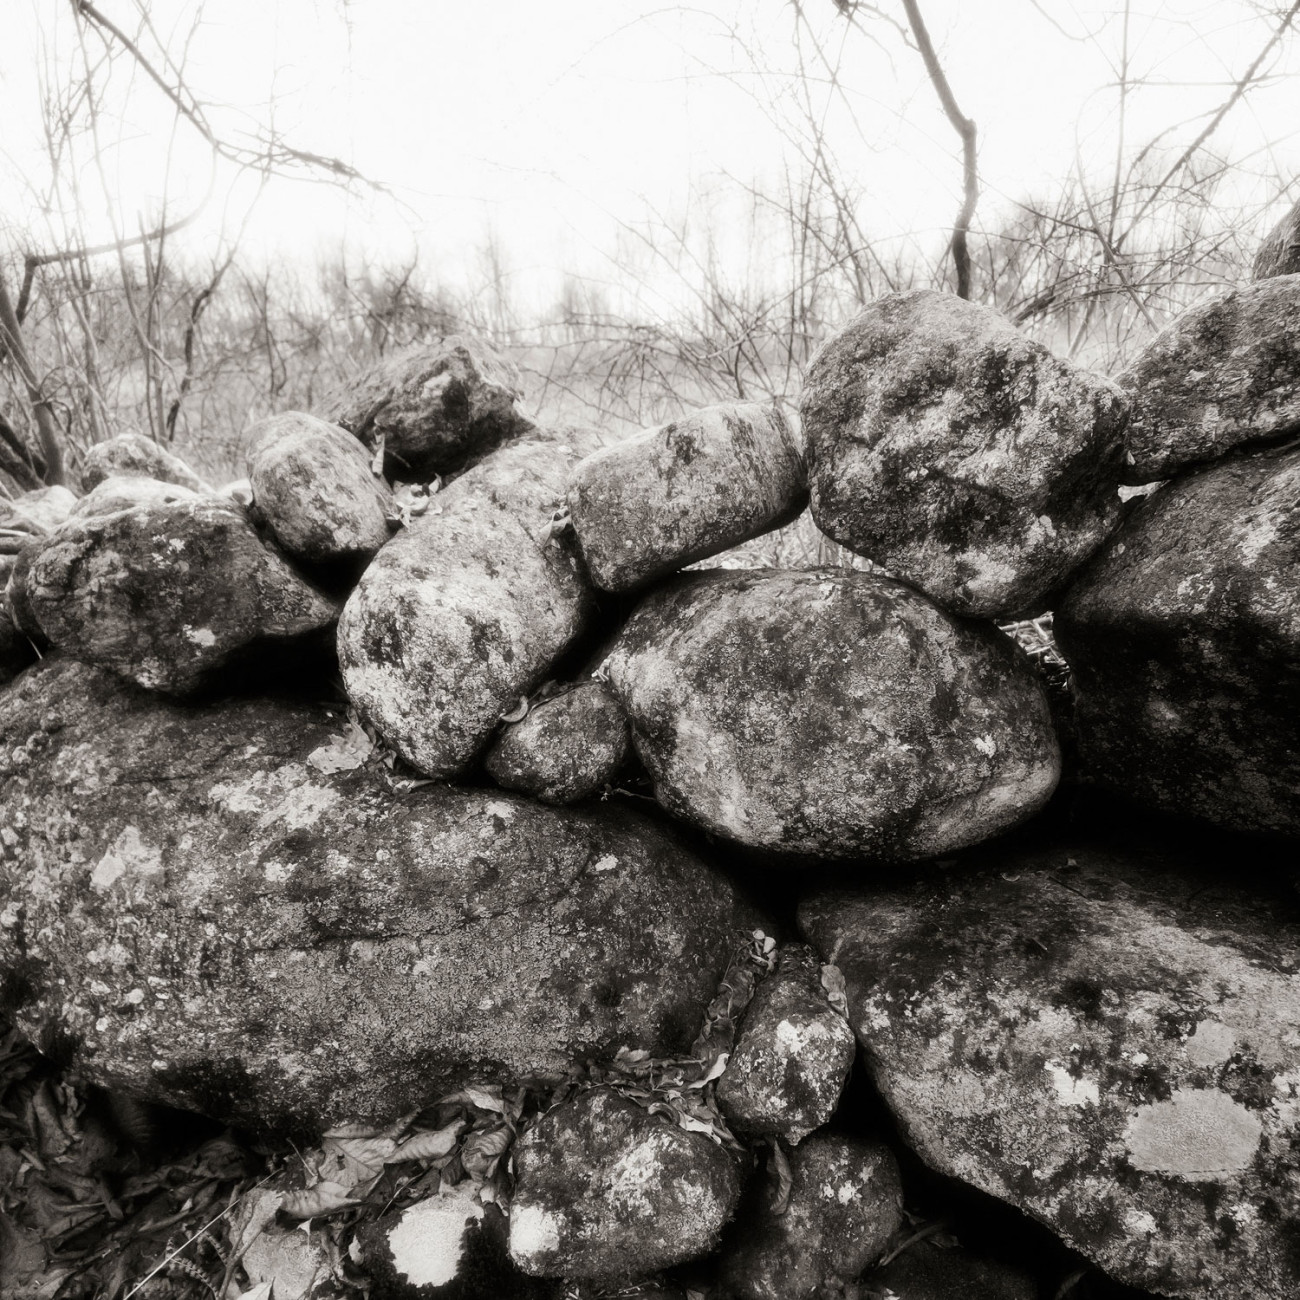 Stone fence, Litchfield Hills, Connecticut, 2011